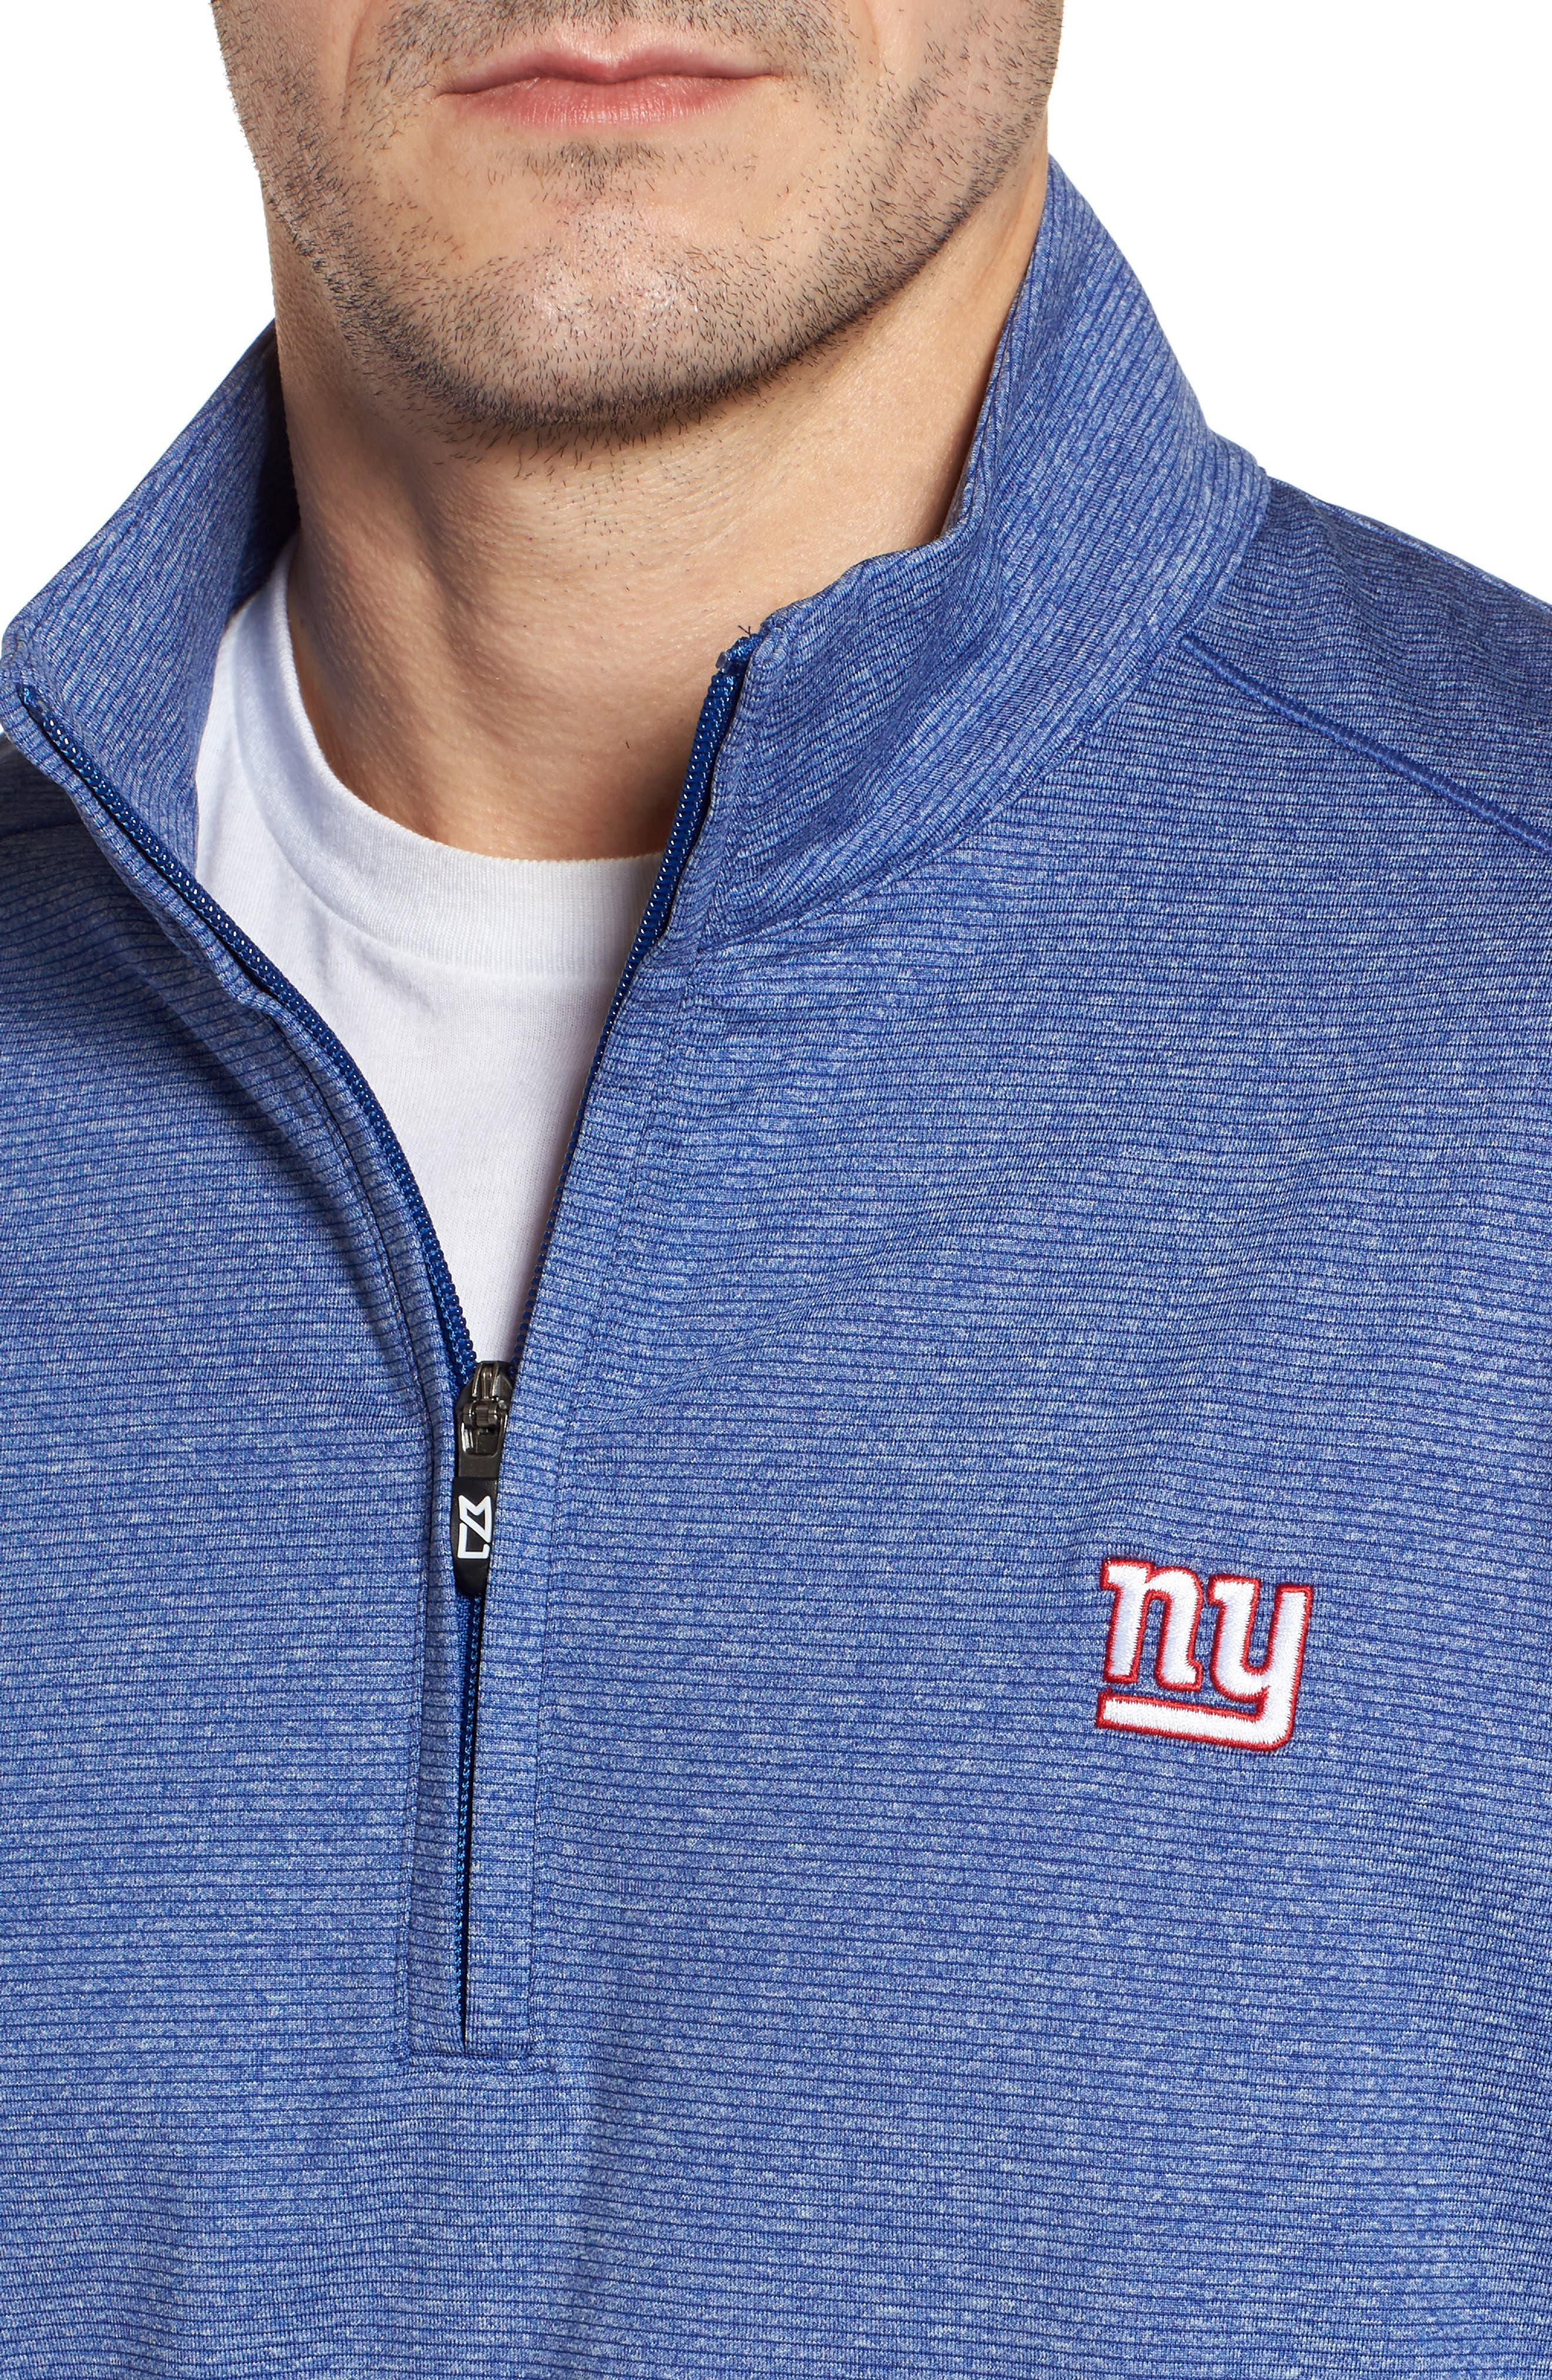 Shoreline - New York Giants Half Zip Pullover,                             Alternate thumbnail 4, color,                             Tour Blue Heather